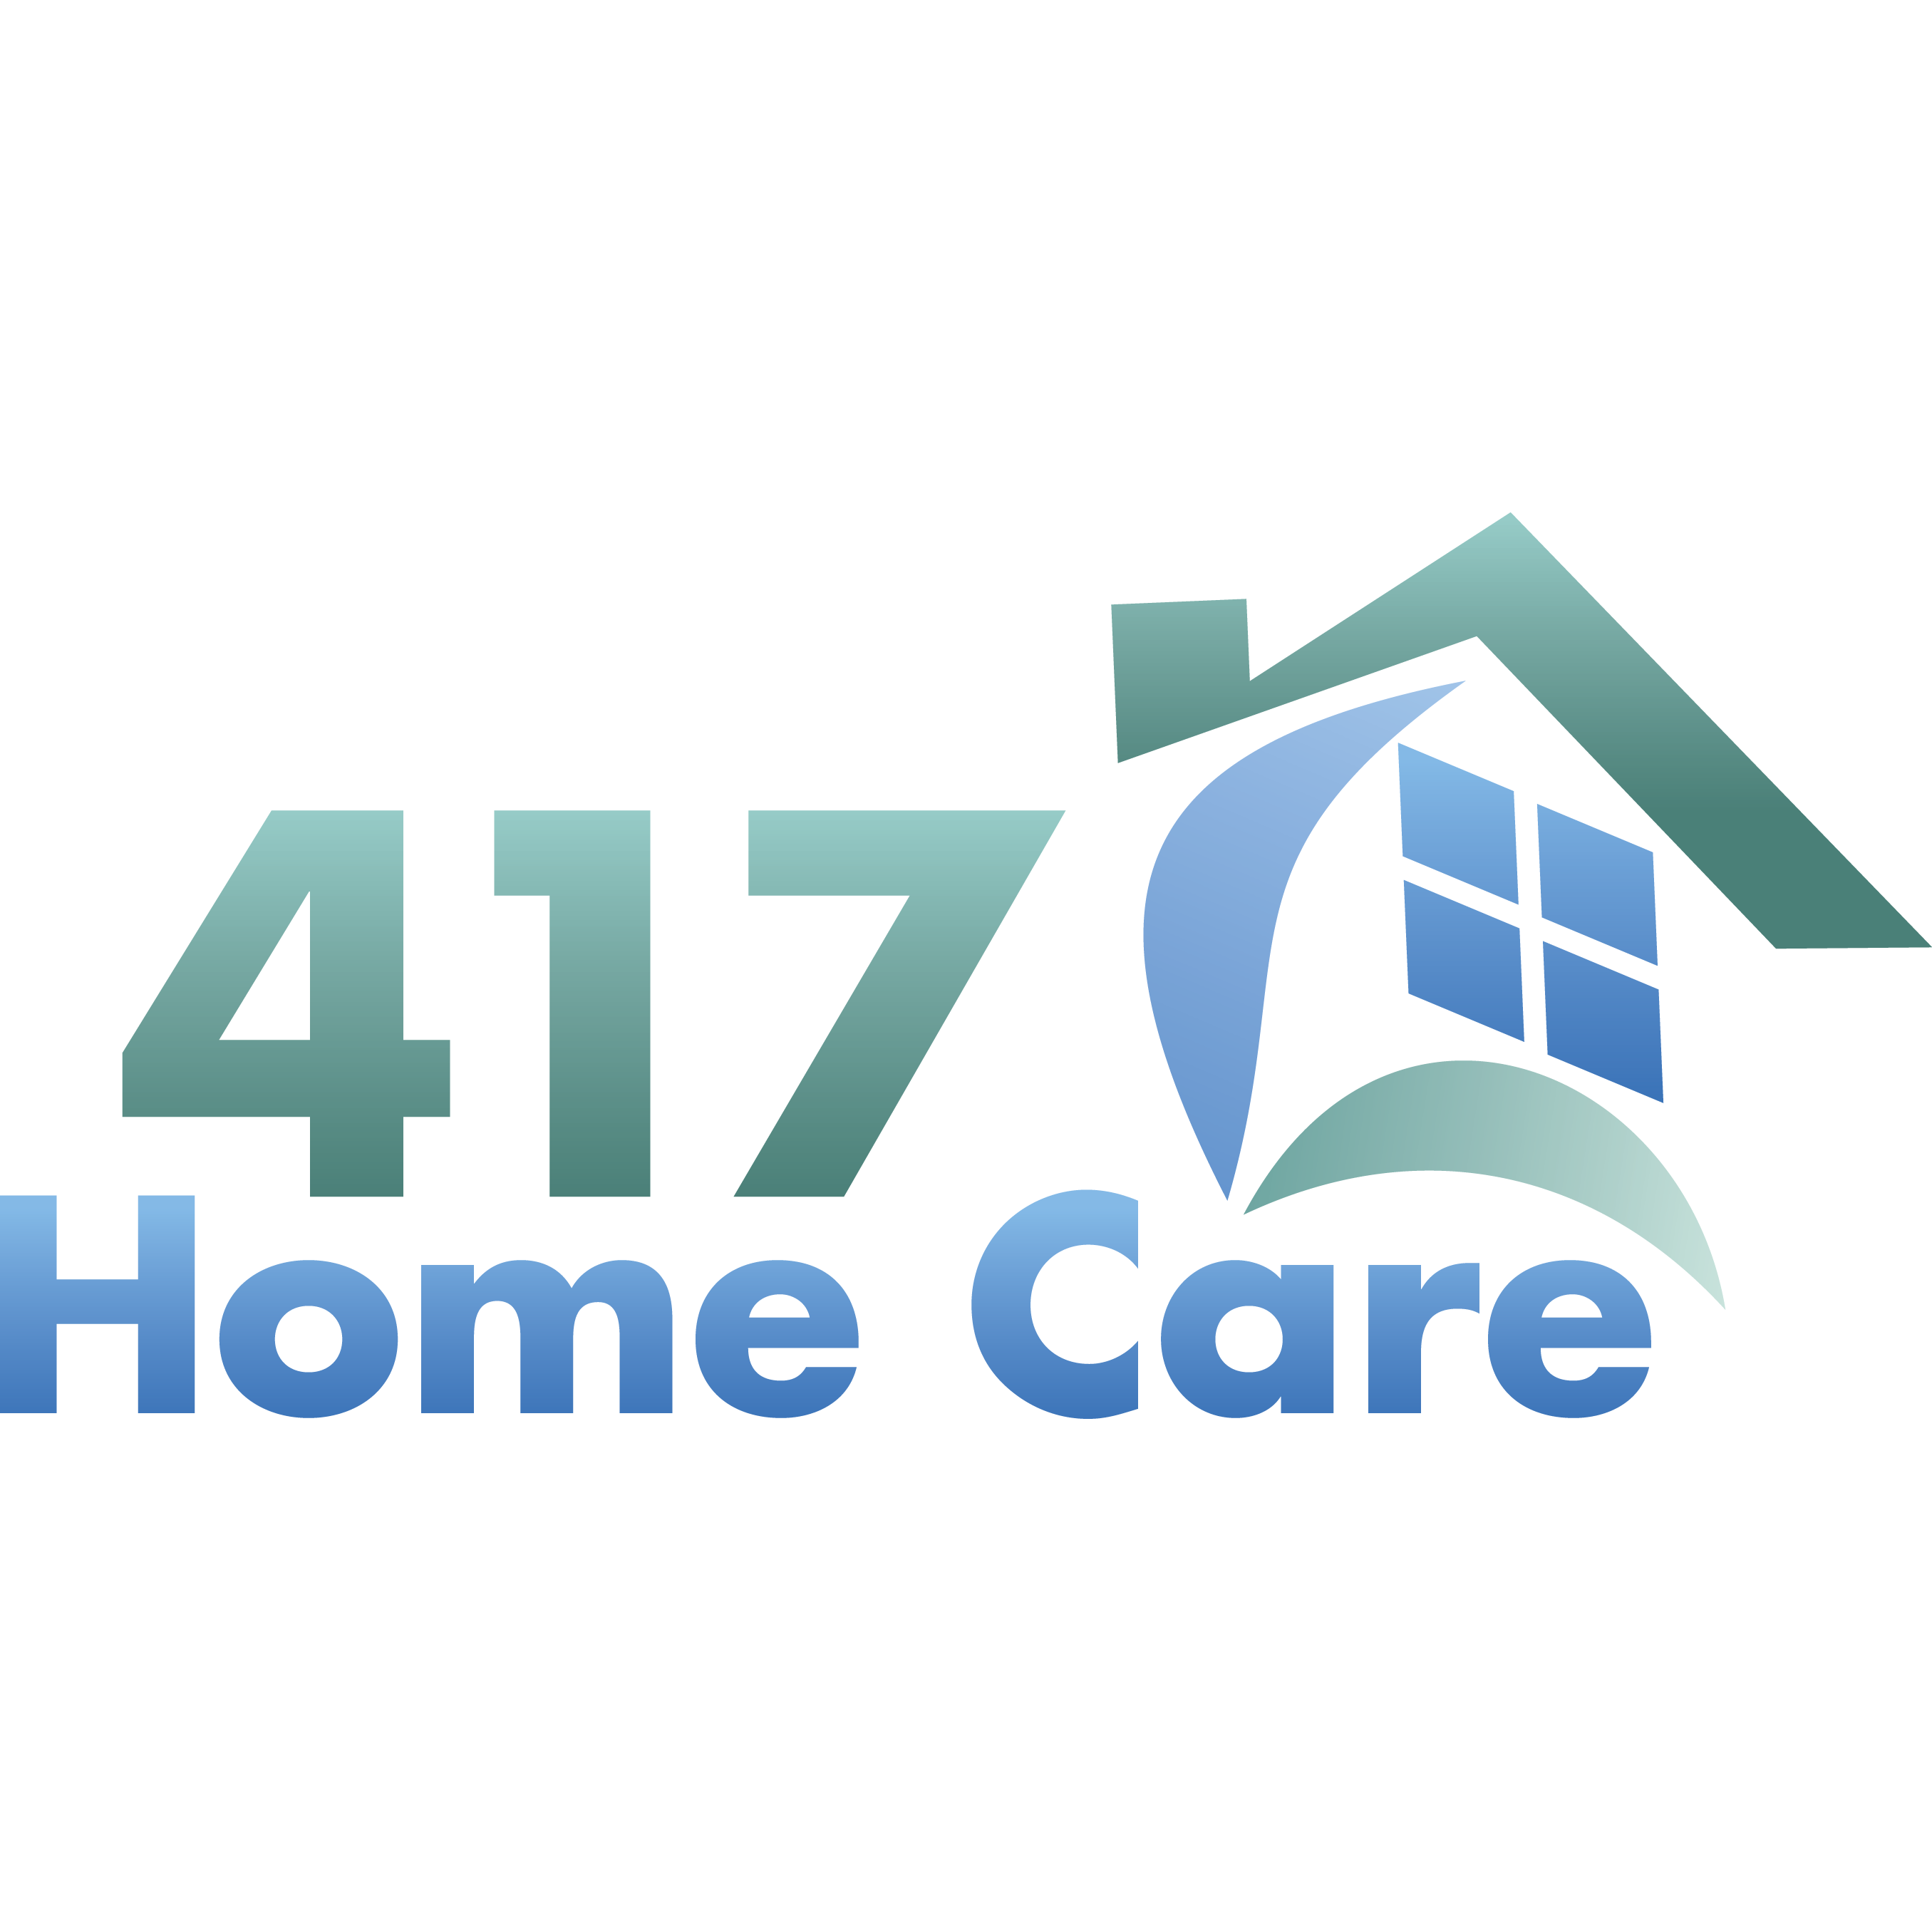 417 Home Care